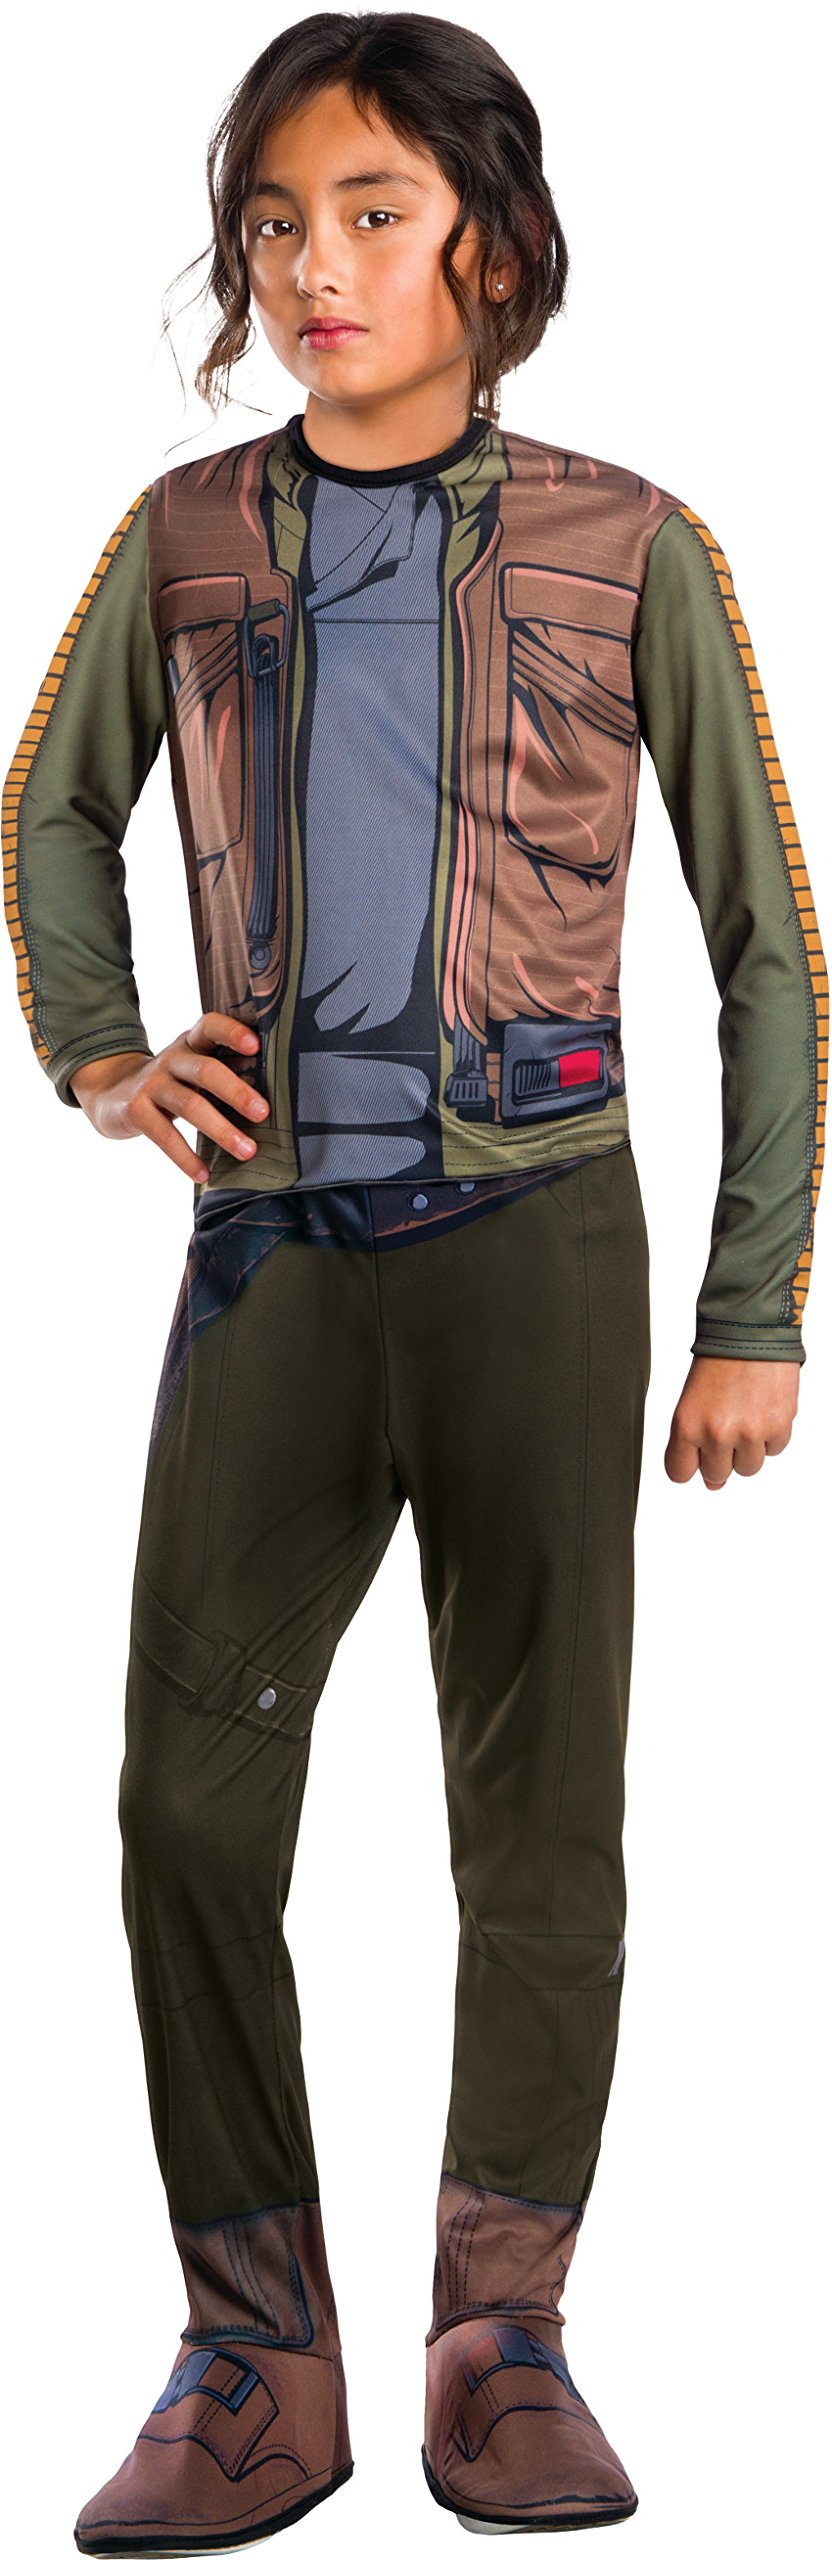 Rogue One: A Star Wars Story Child's Jyn Erso Costume, Medium